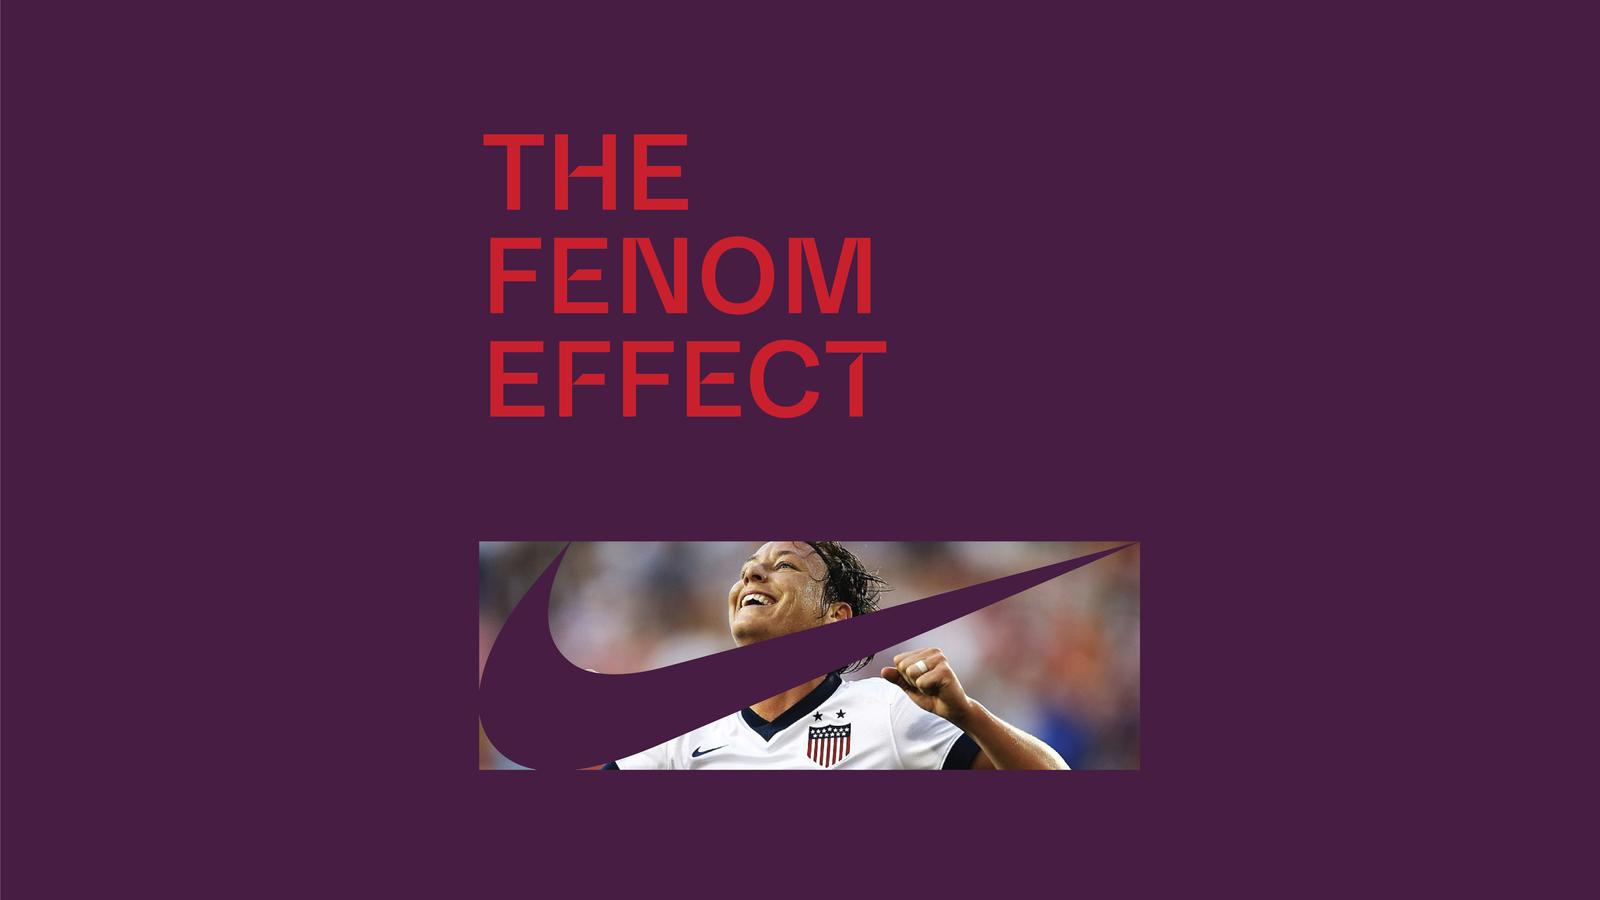 """The Fenom Effect"" - I joined the Gimlet Creative team to help produce a branded podcast for Nike focused on the stories of women athletes. Listen here. Learn more about Gimlet Creative."